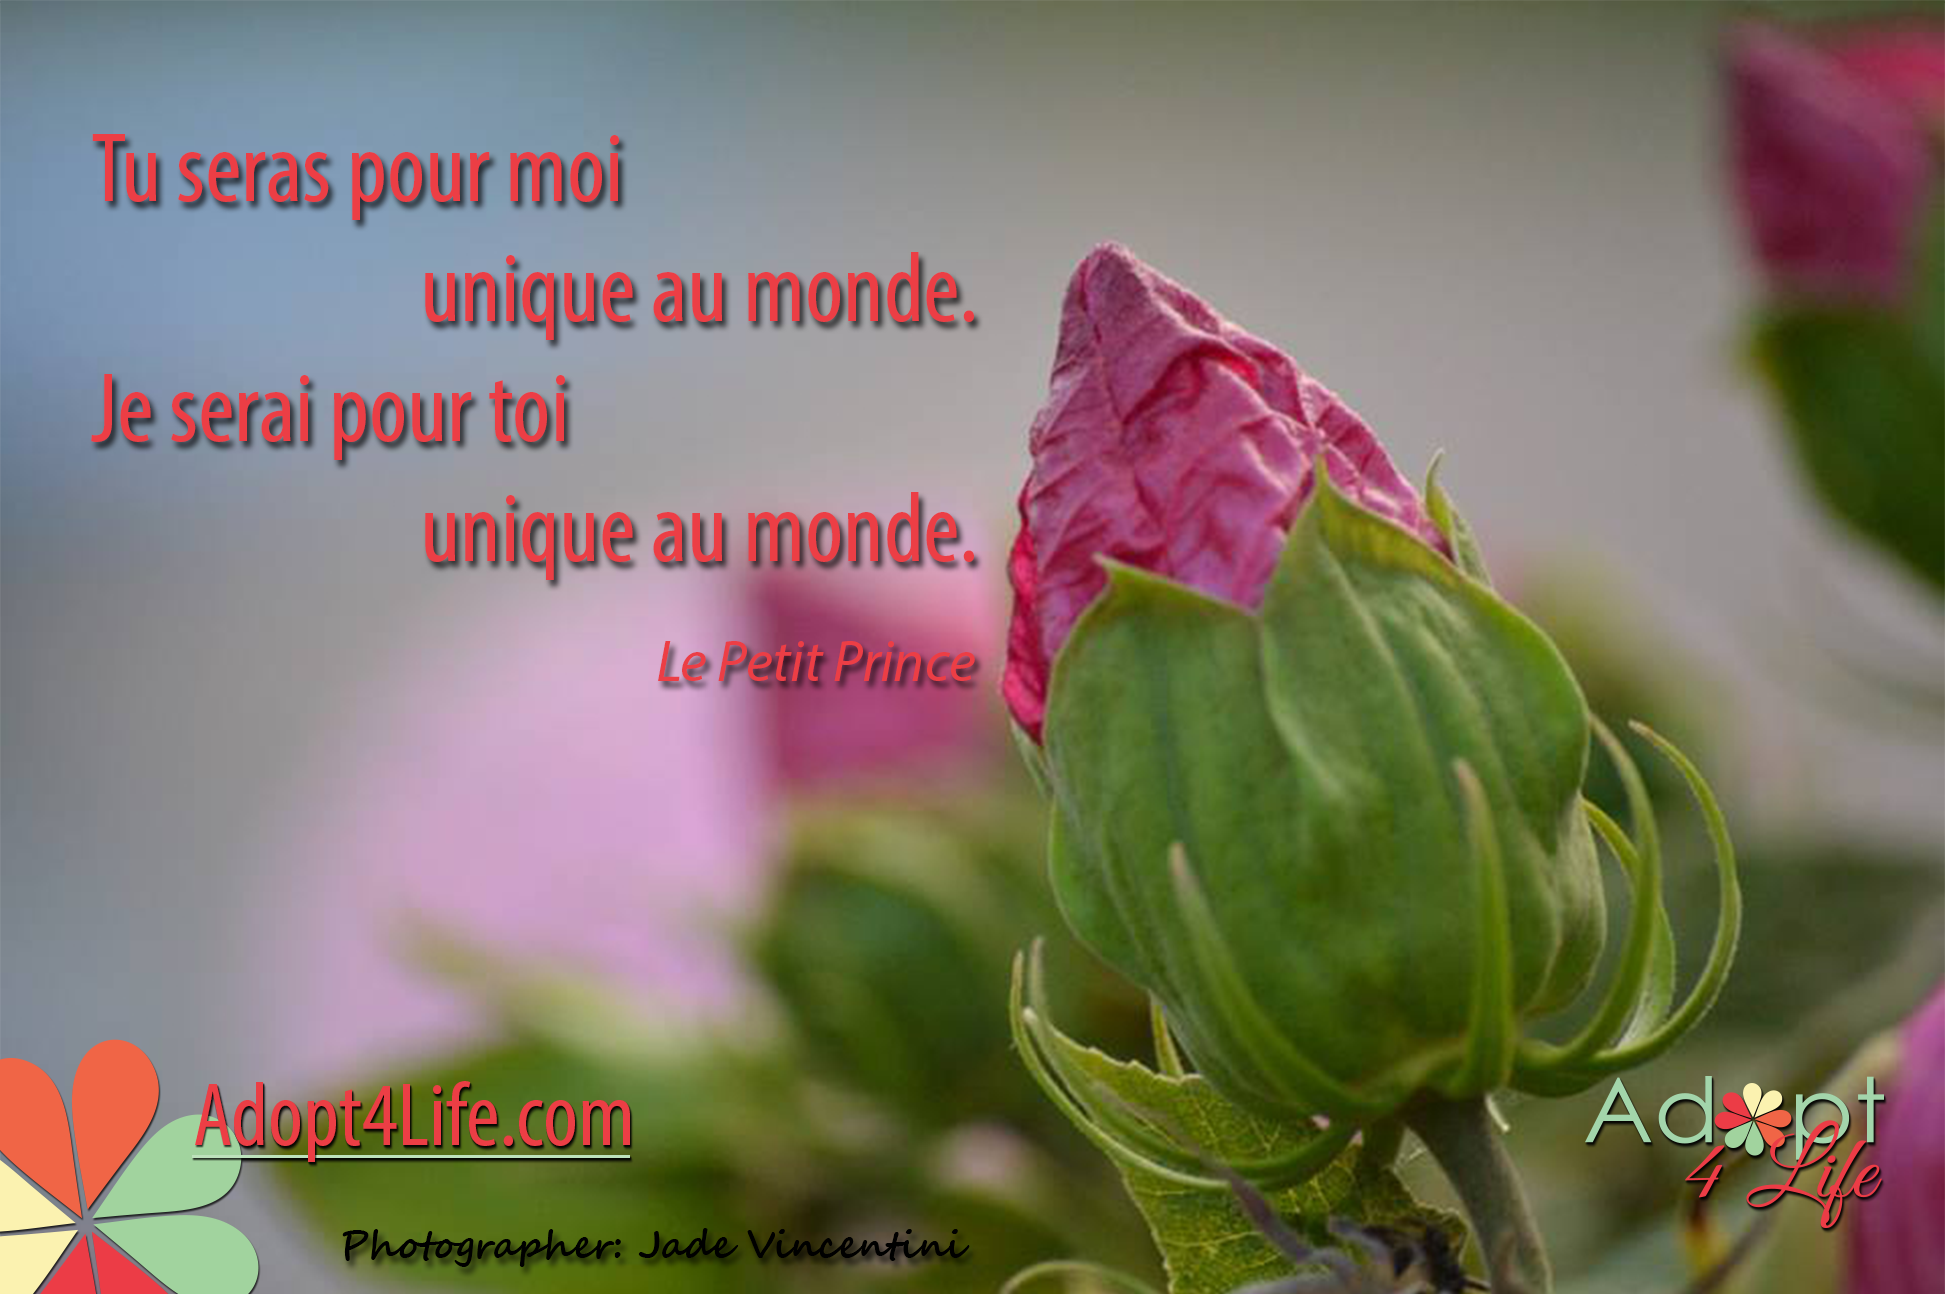 Facebook_AdoptionQuote_French_012_Dec2014_png.png